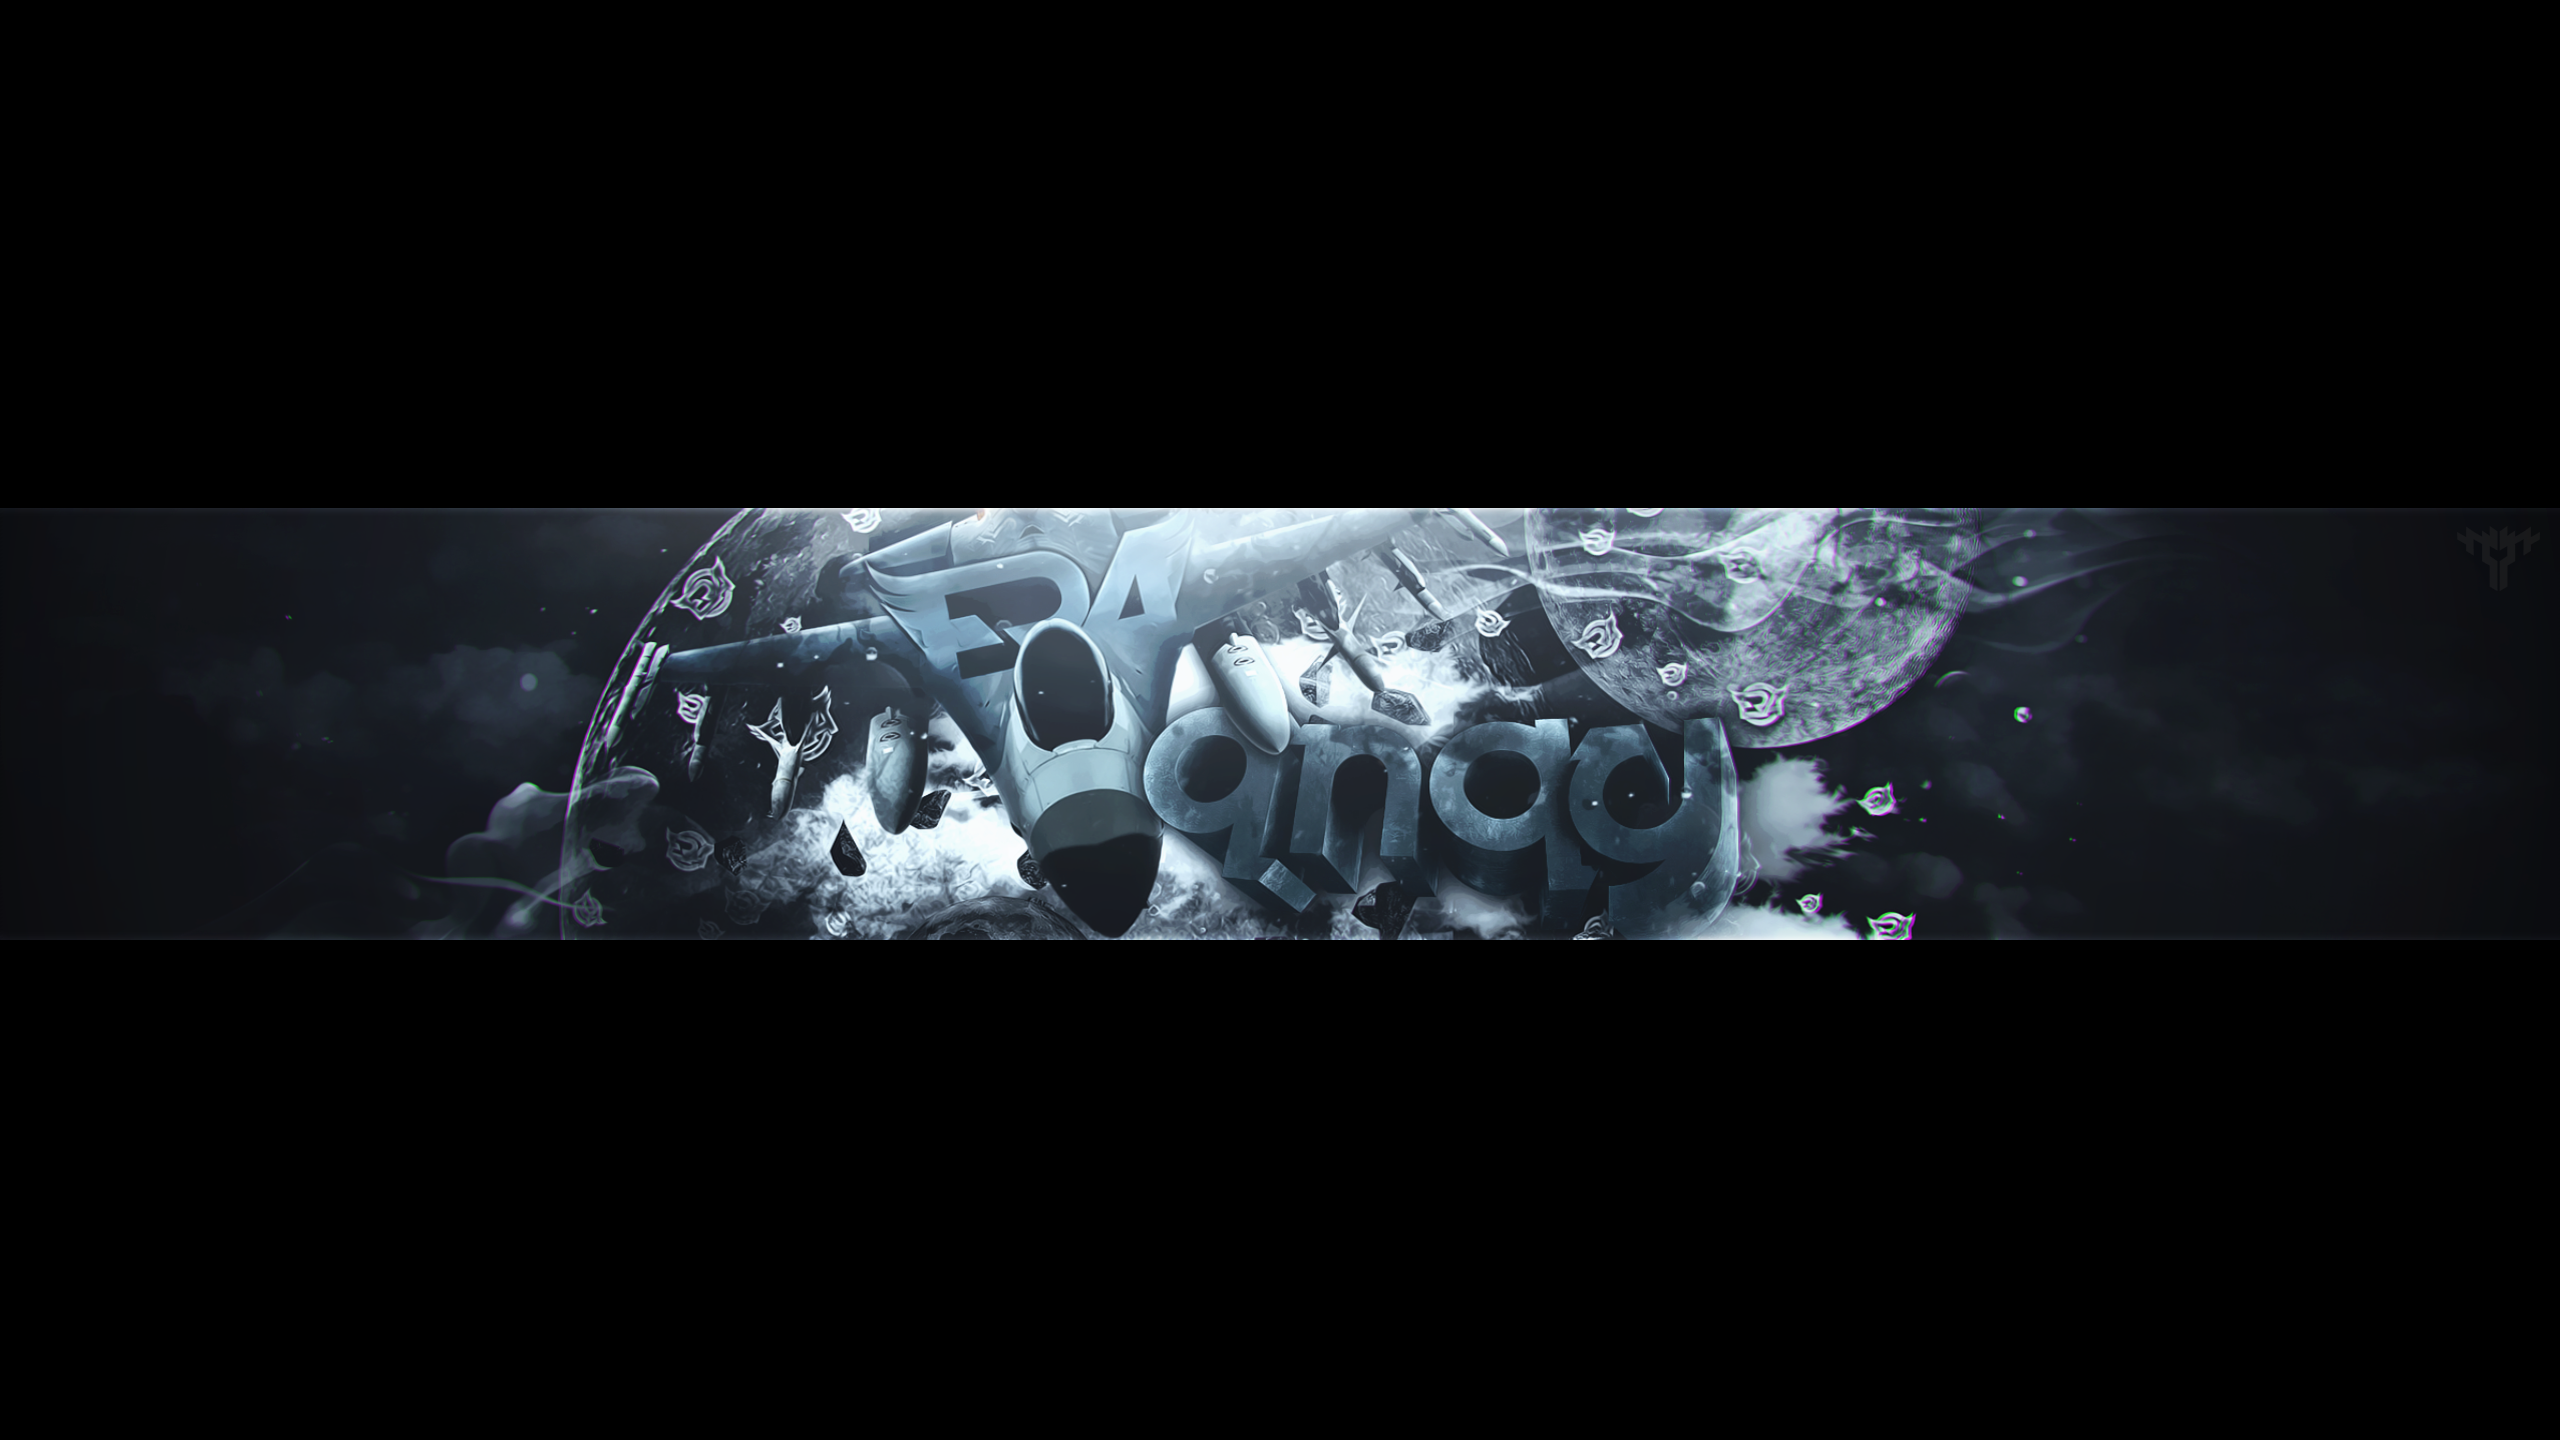 eRa QNQY YouTube Banner by iiTggr on DeviantArt